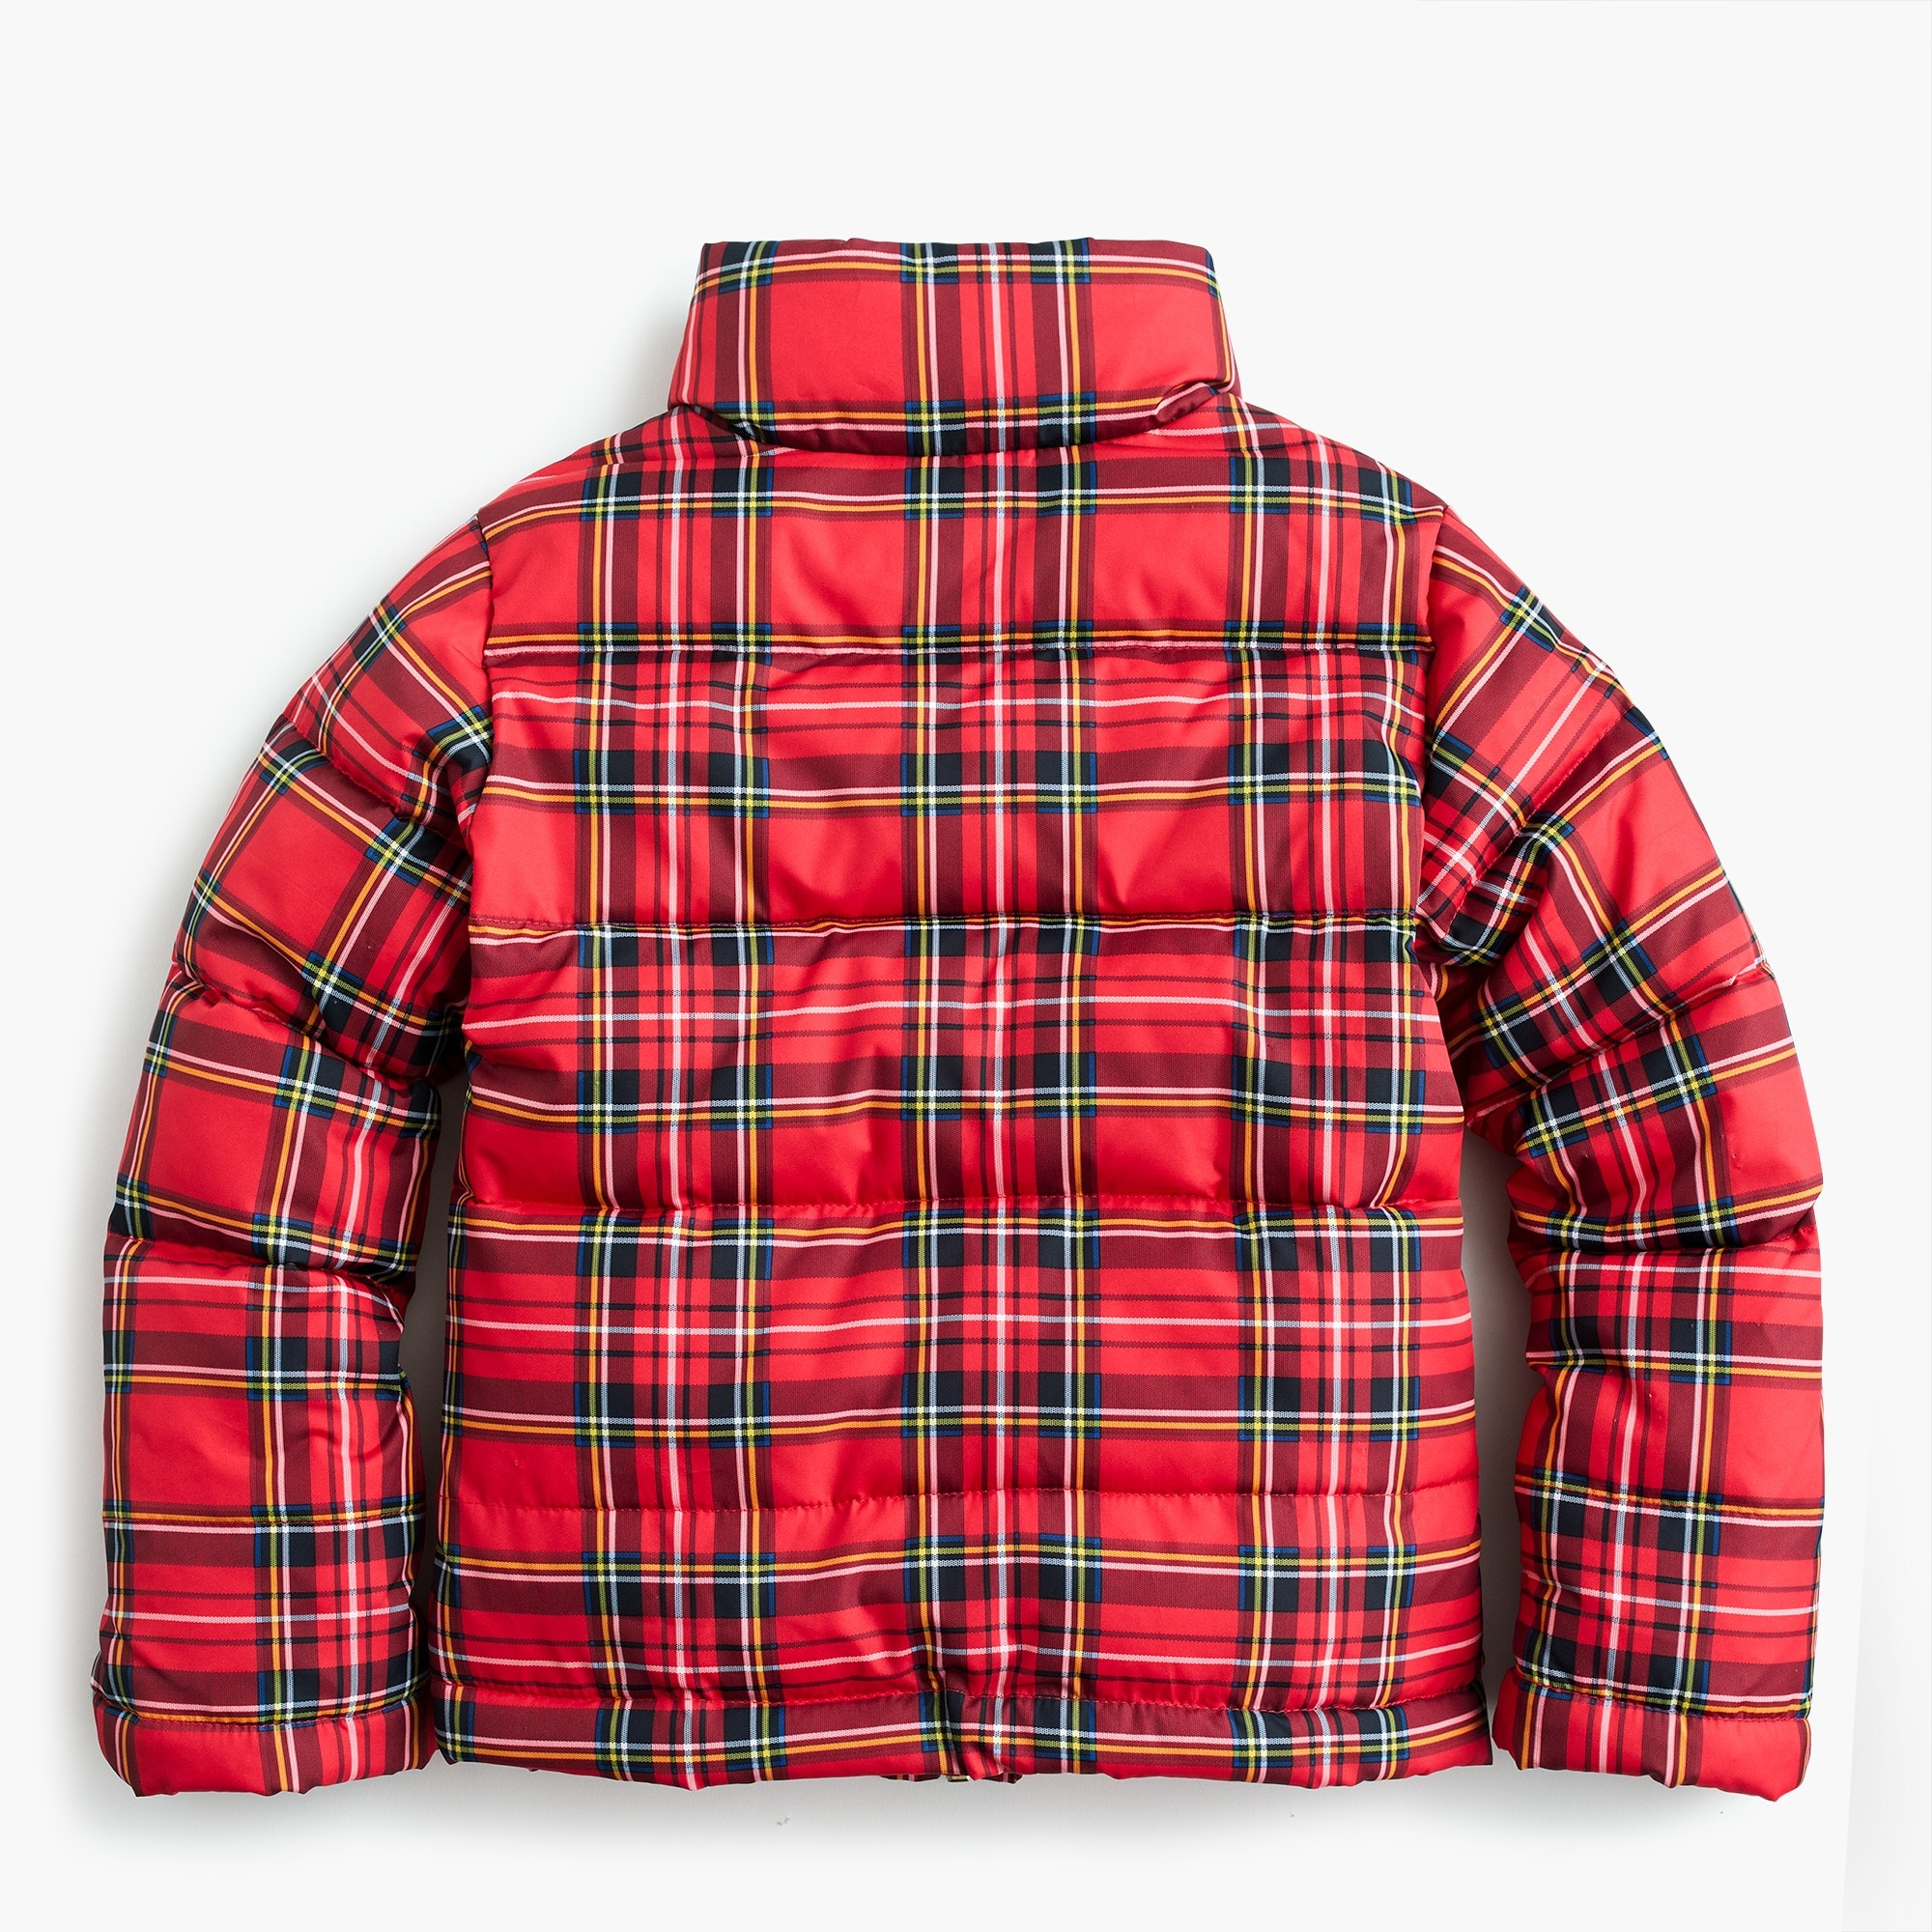 Image 2 for Girls' puffer jacket with eco-friendly Primaloft® in red tartan